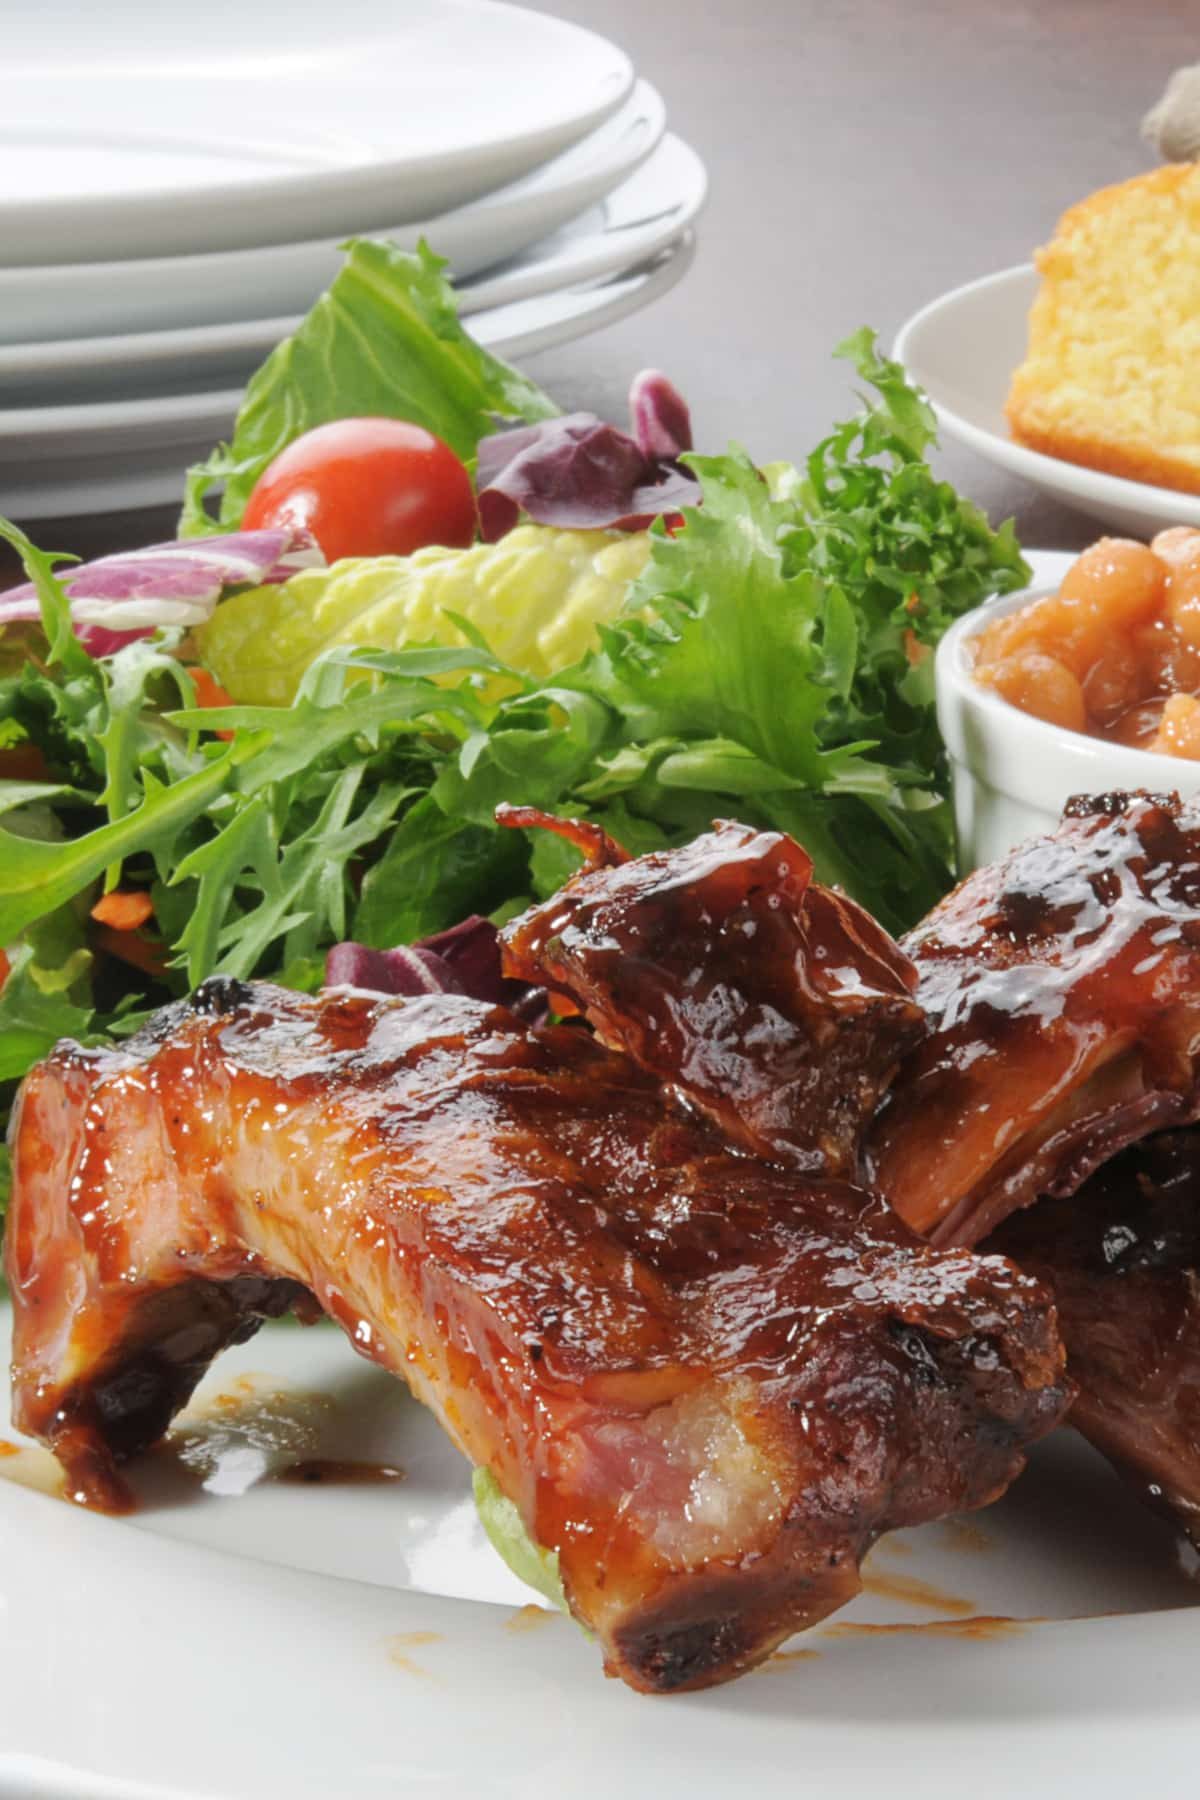 bbq ribs in oven with side dishes 12x18 1